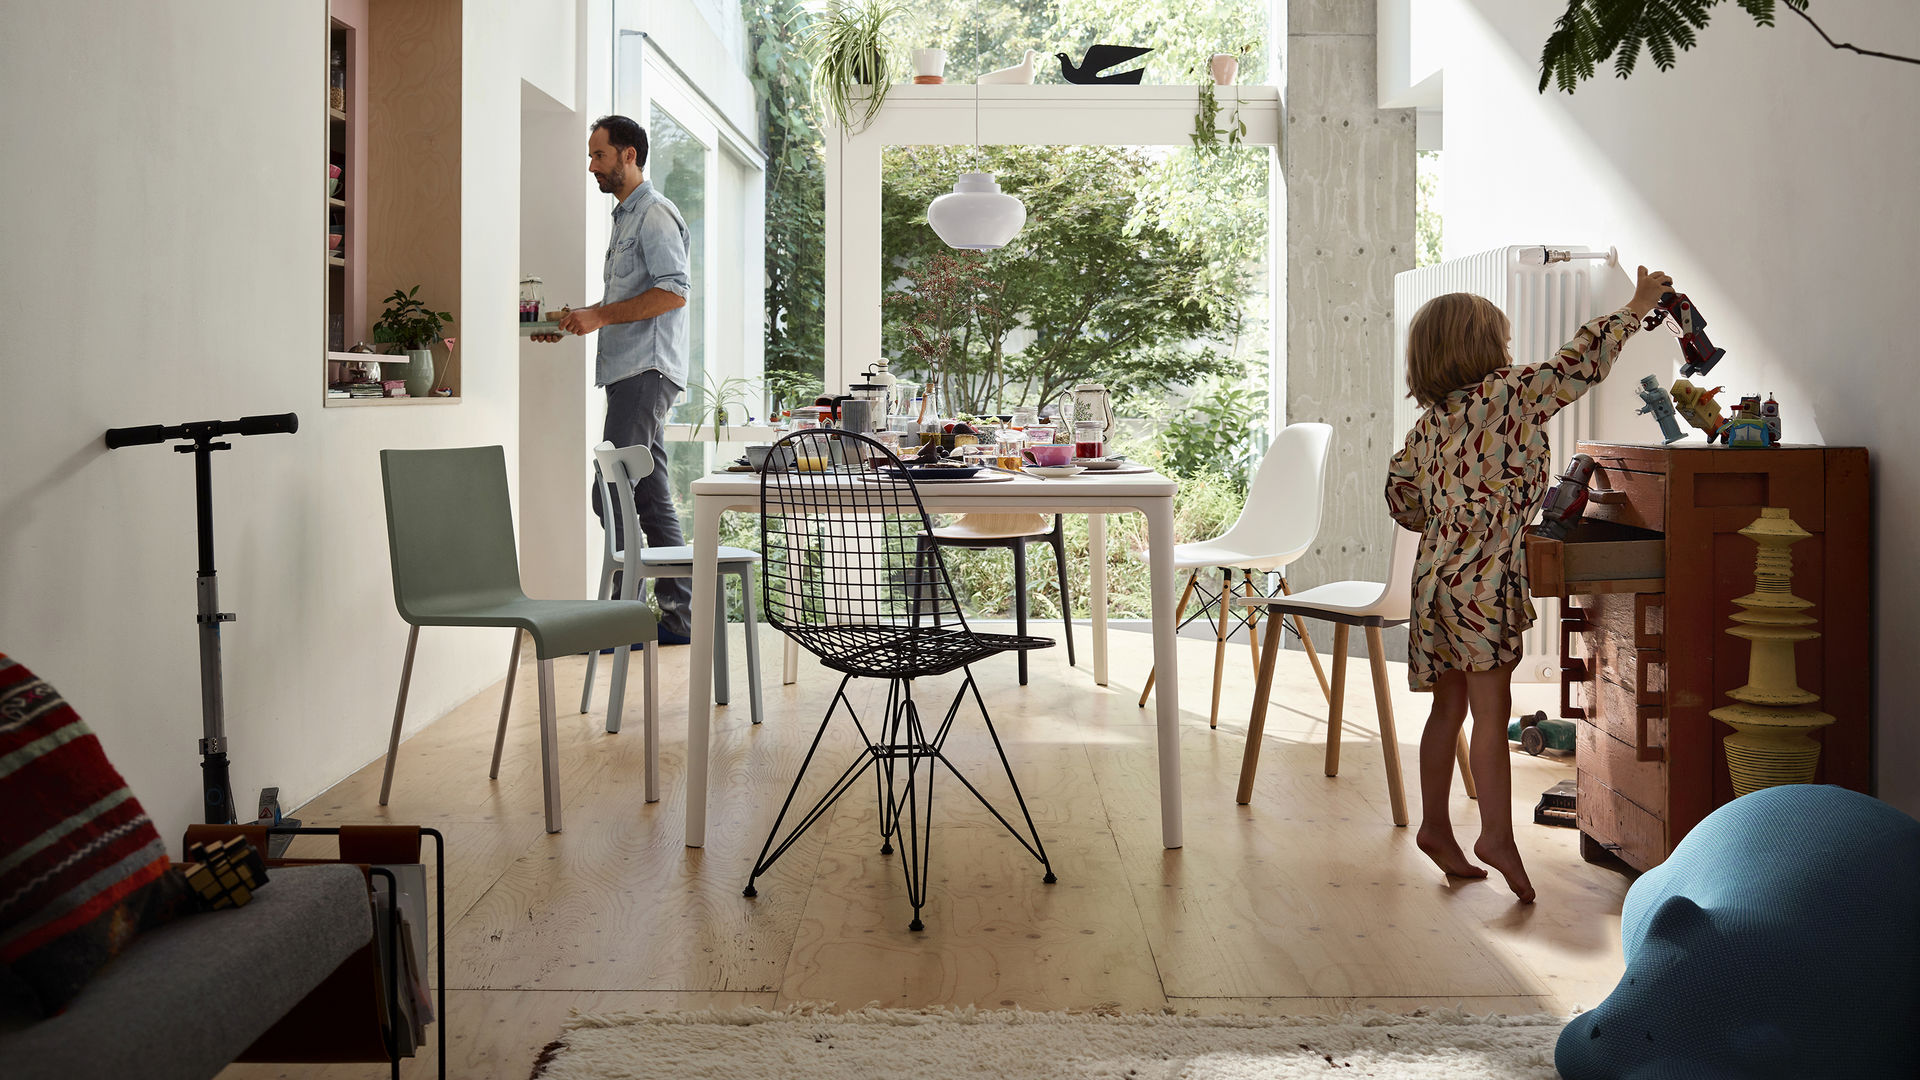 Plate Dining Table .03 Wire Chair DKR HAL Wood Eames Plastic Chair DSW Belleville Chair Wood All Plastic Chair Resting Bear L'Oiseau Metal Wall Relief Dove_web_16-9